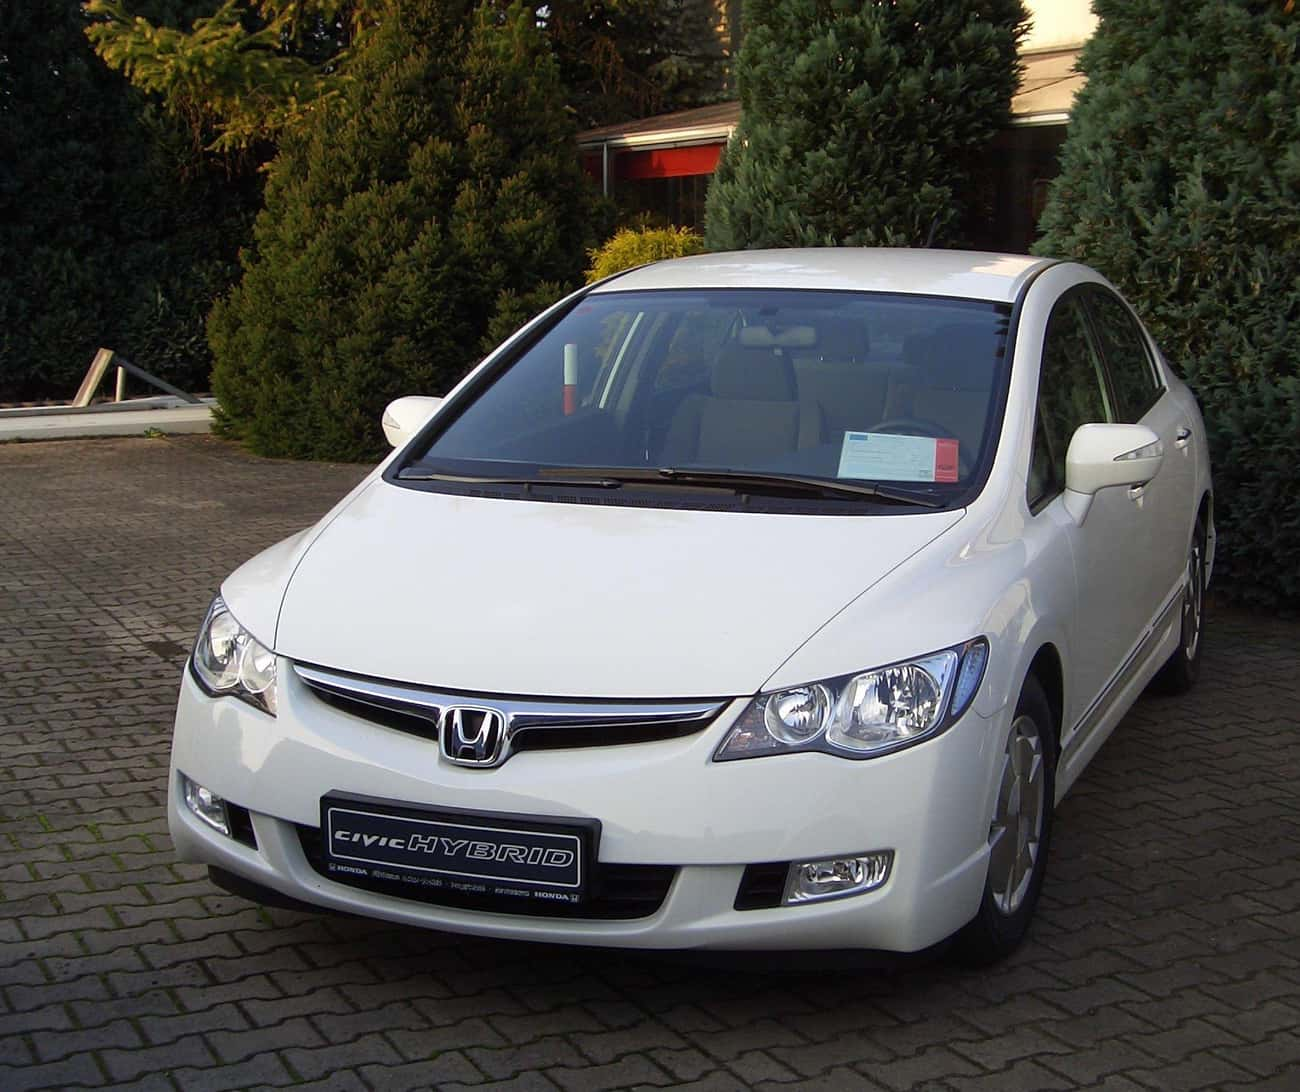 Honda Civic Hybrid is listed (or ranked) 3 on the list The Best Highway Cars for Long Distance Driving